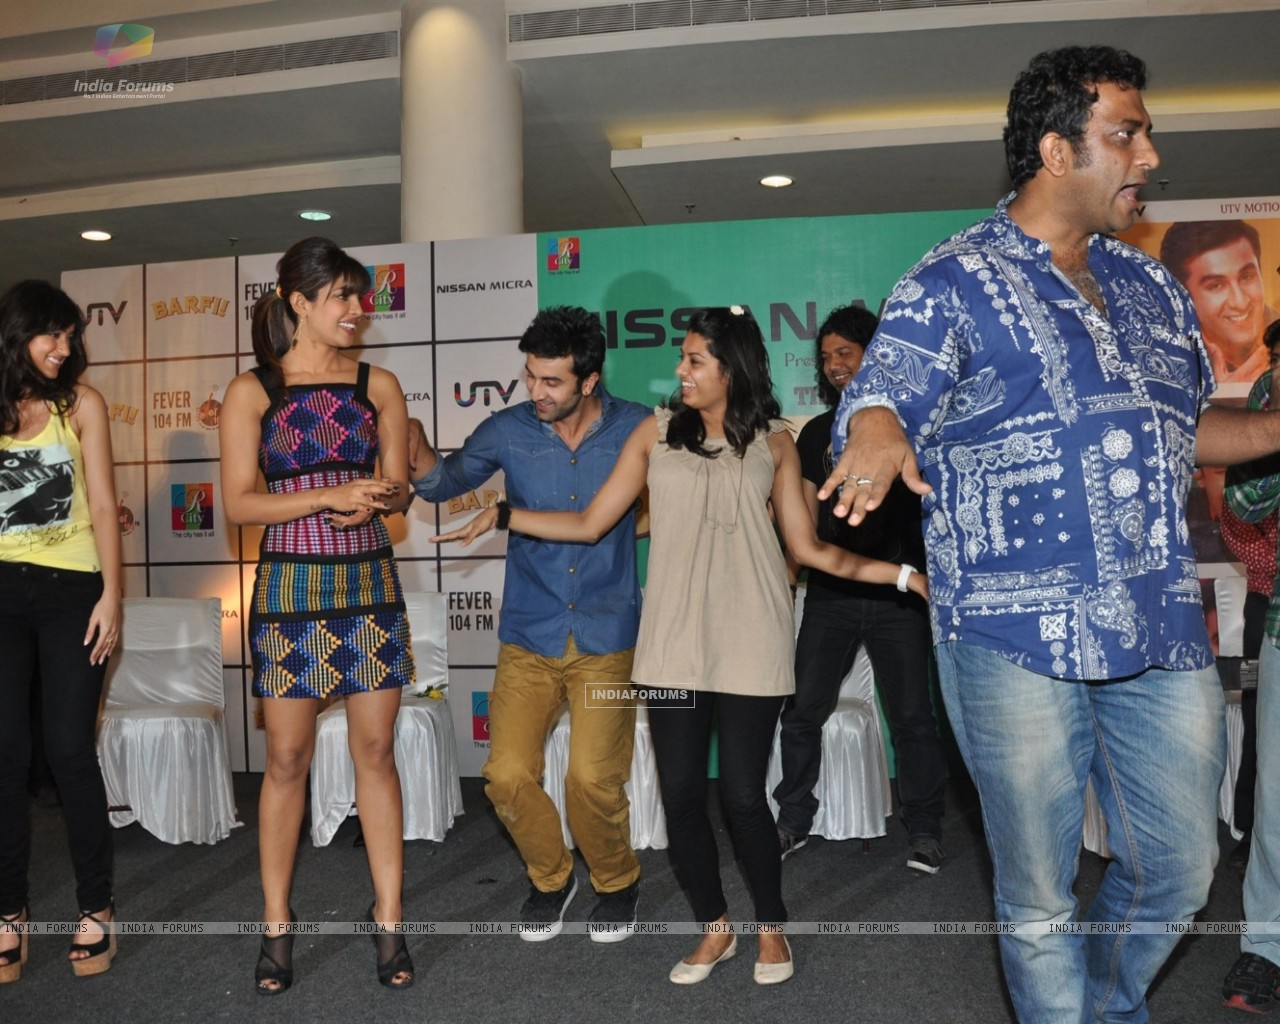 Ileana D'Cruz, Ranbir Kapoor, Priyanka Chopra, Anurag Basu at Film Barfi Promotion With R City Mall (224773) size:1280x1024